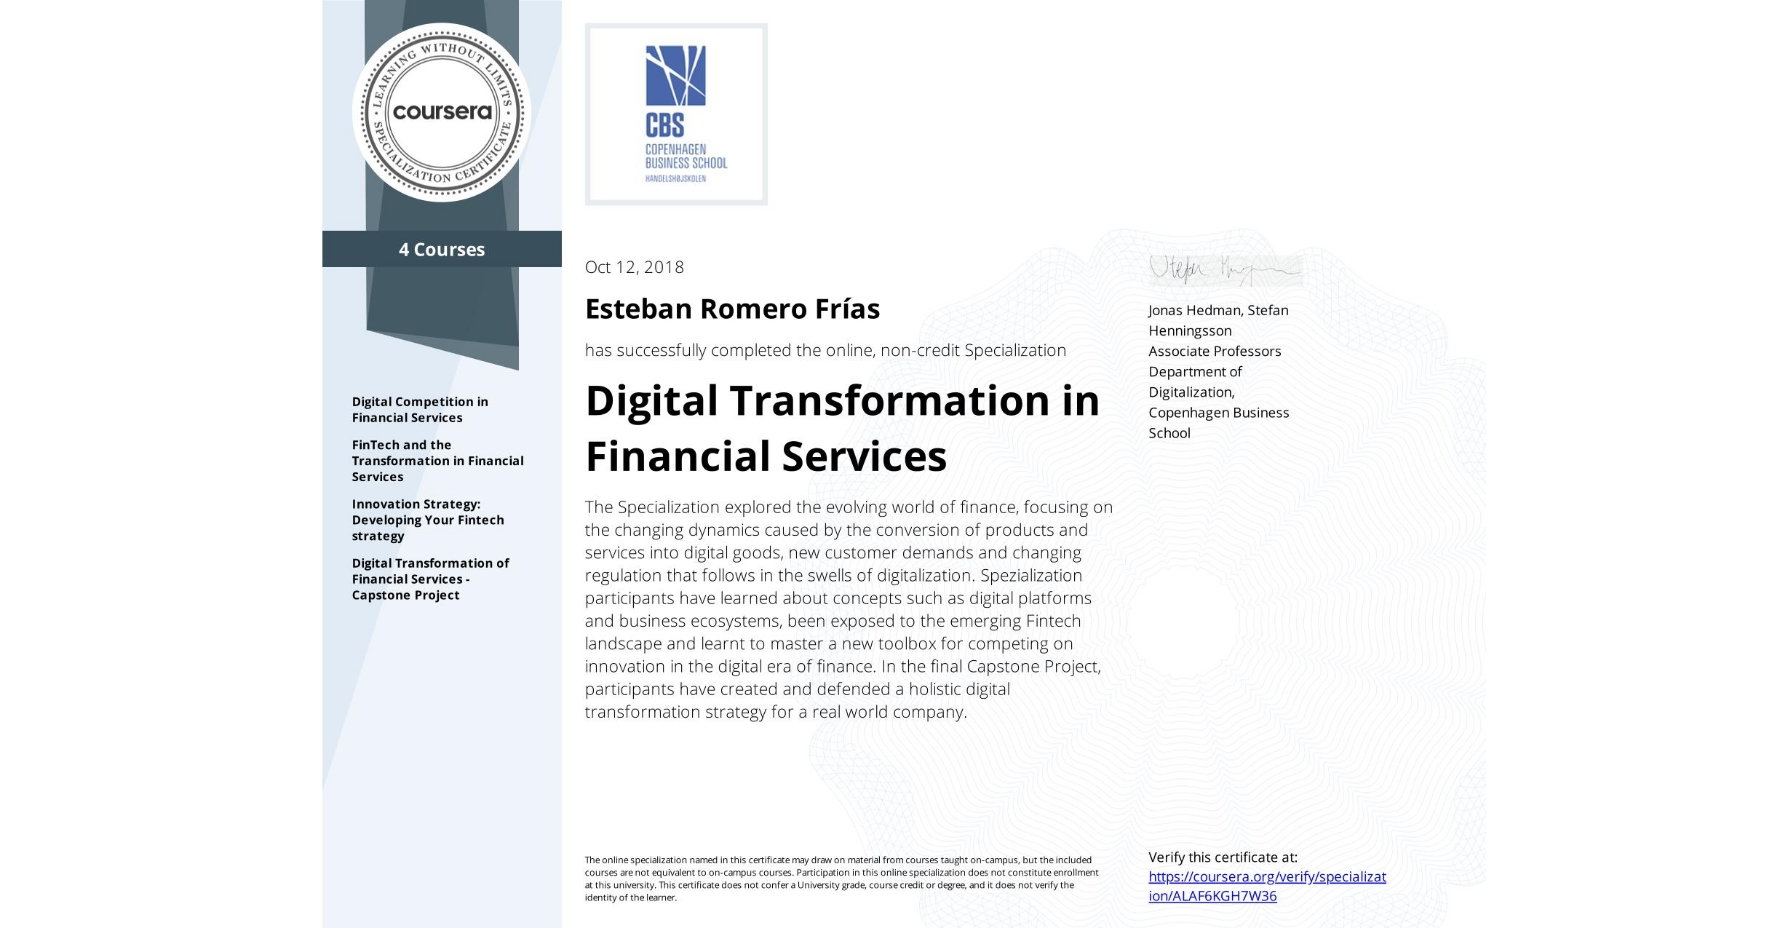 View certificate for Esteban Romero Frías, Digital Transformation in Financial Services, offered through Coursera. The Specialization explored the evolving world of finance, focusing on the changing dynamics caused by the conversion of products and services into digital goods, new customer demands and changing regulation that follows in the swells of digitalization.   Spezialization participants have learned about concepts such as digital platforms and business ecosystems, been exposed to the emerging Fintech landscape and learnt to master a new toolbox for competing on innovation in the digital era of finance. In the final Capstone Project, participants have created and defended a holistic digital transformation strategy for a real world company.